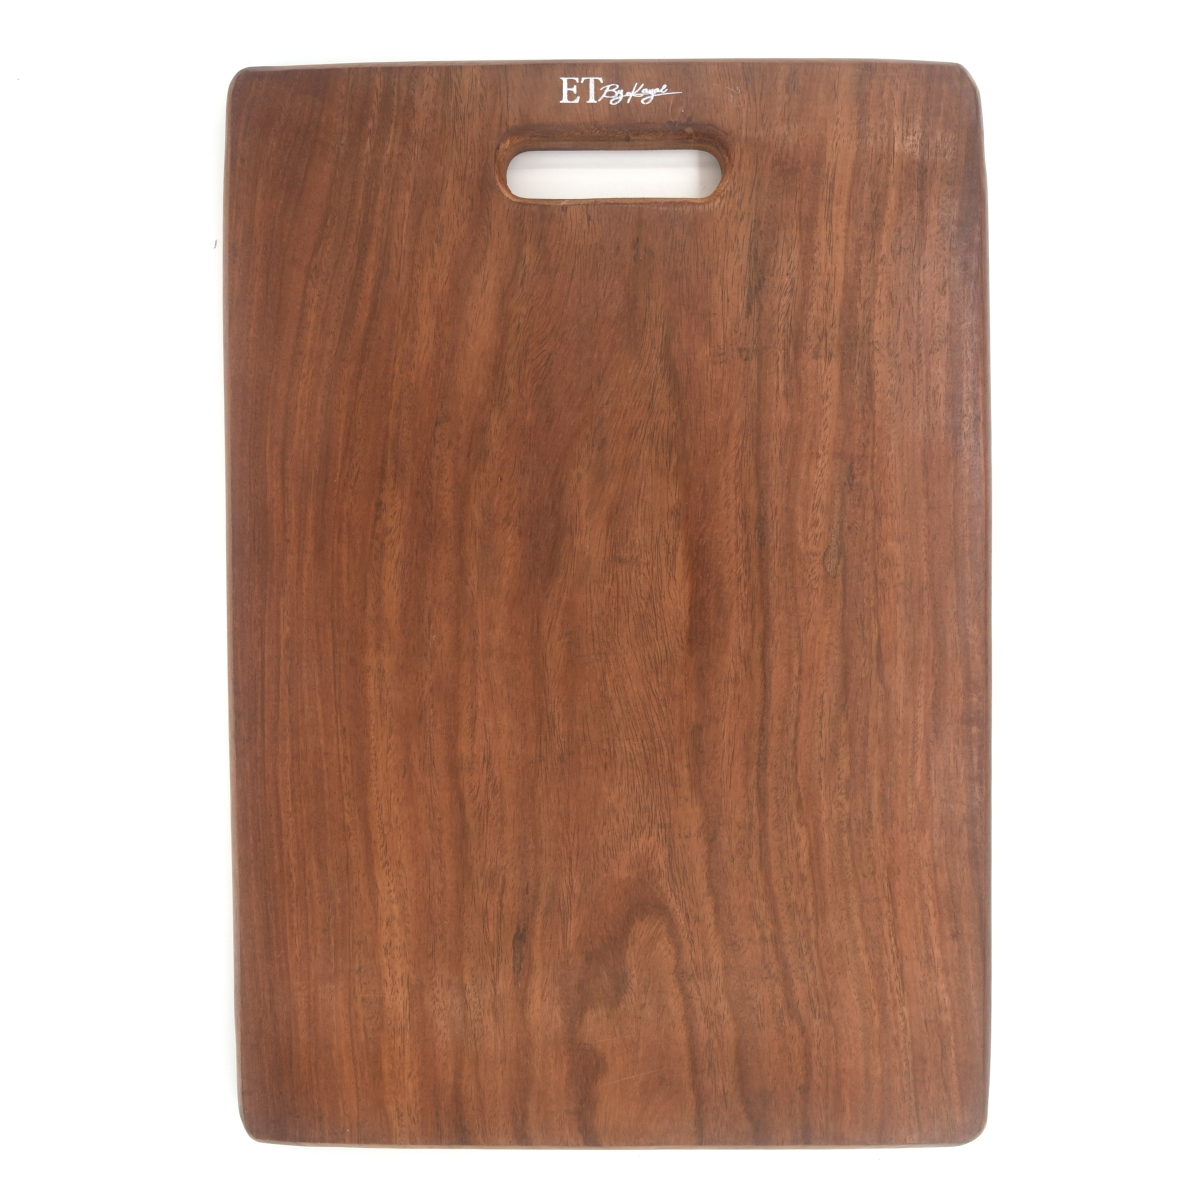 Wooden Cutting Board(Rectangle)